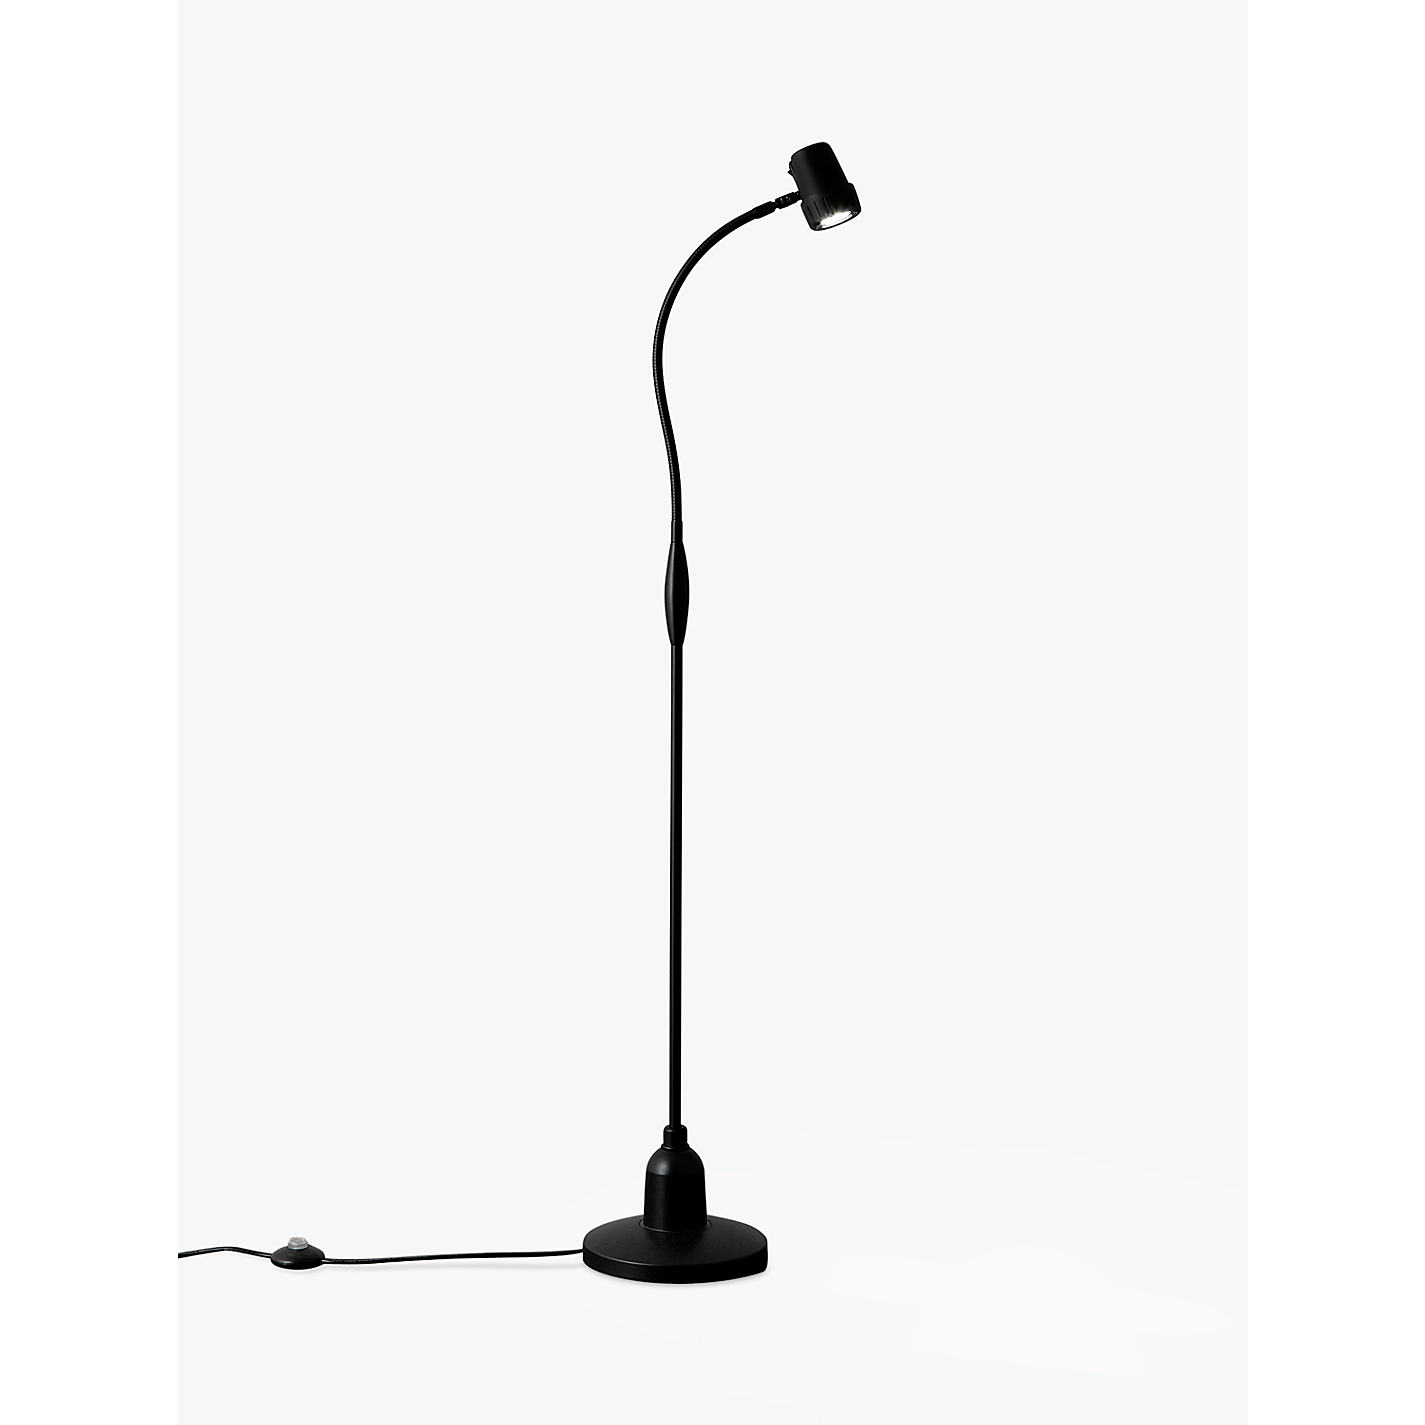 Best floor reading lamps for seniors -  Buy Serious Readers Alex Led Floor Lamp Online At Johnlewis Com